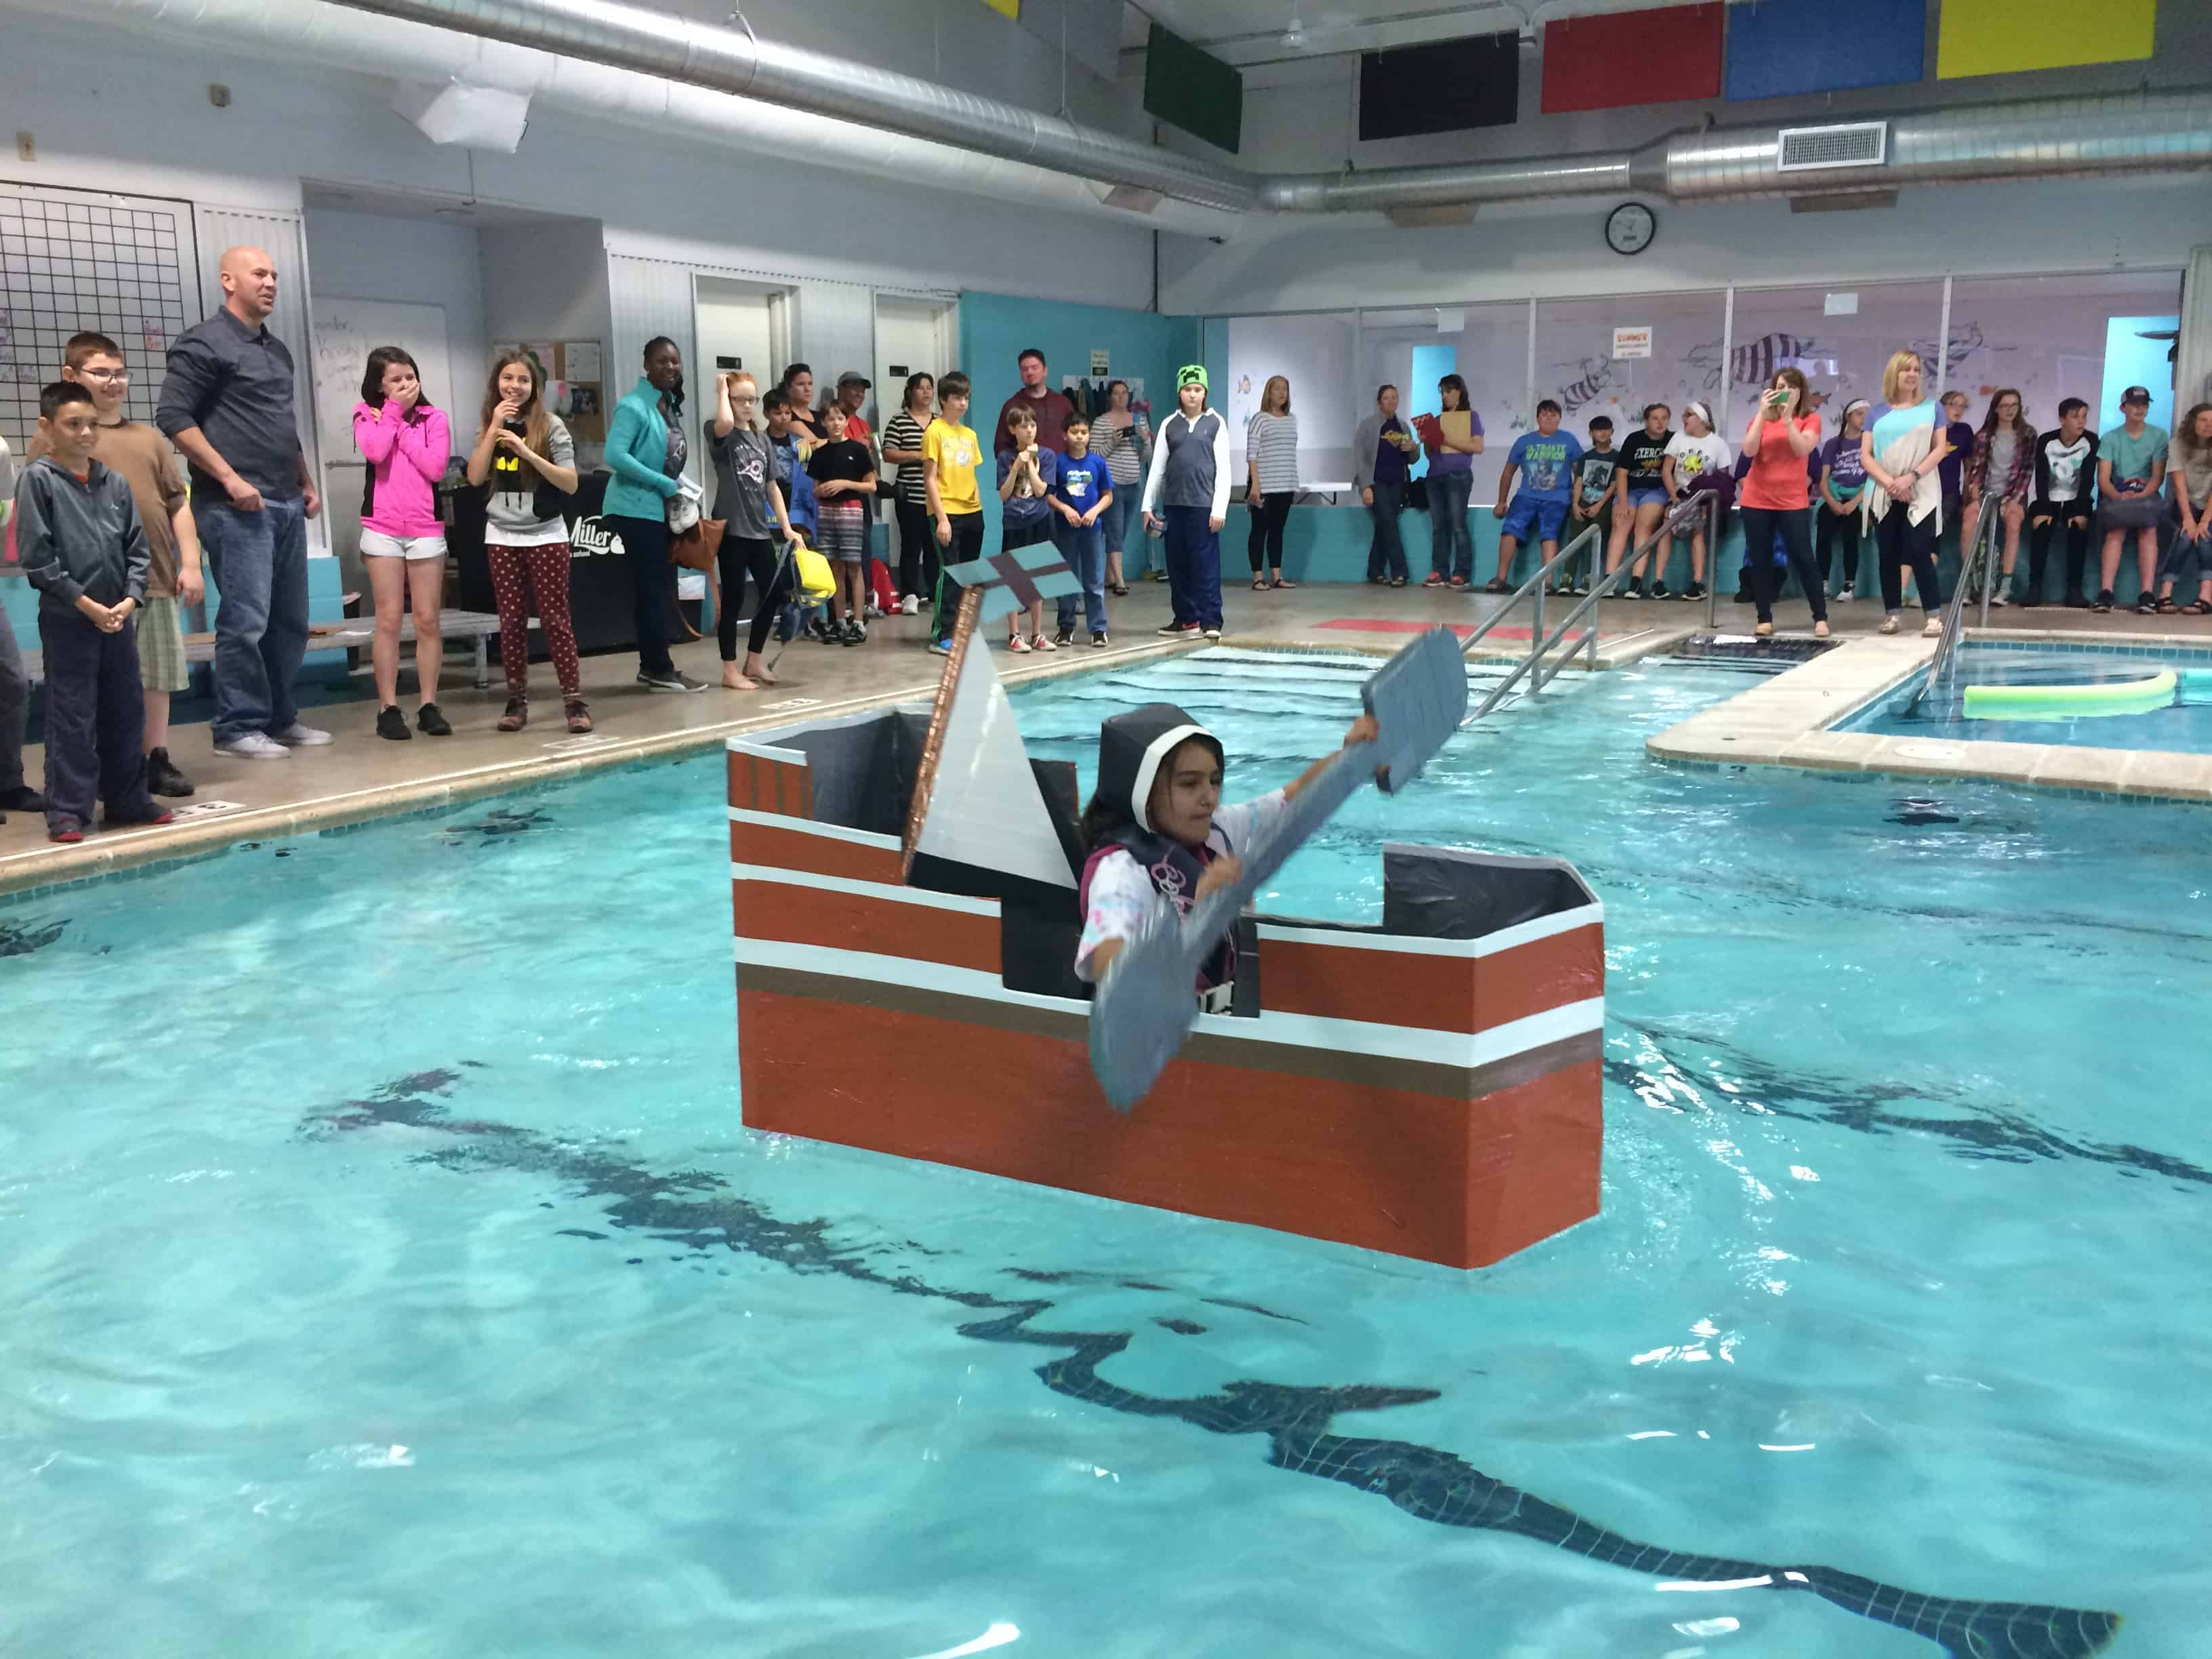 Student in costume paddles her boat in the 2017 Cardboard and Duct Tape Boat Regatta